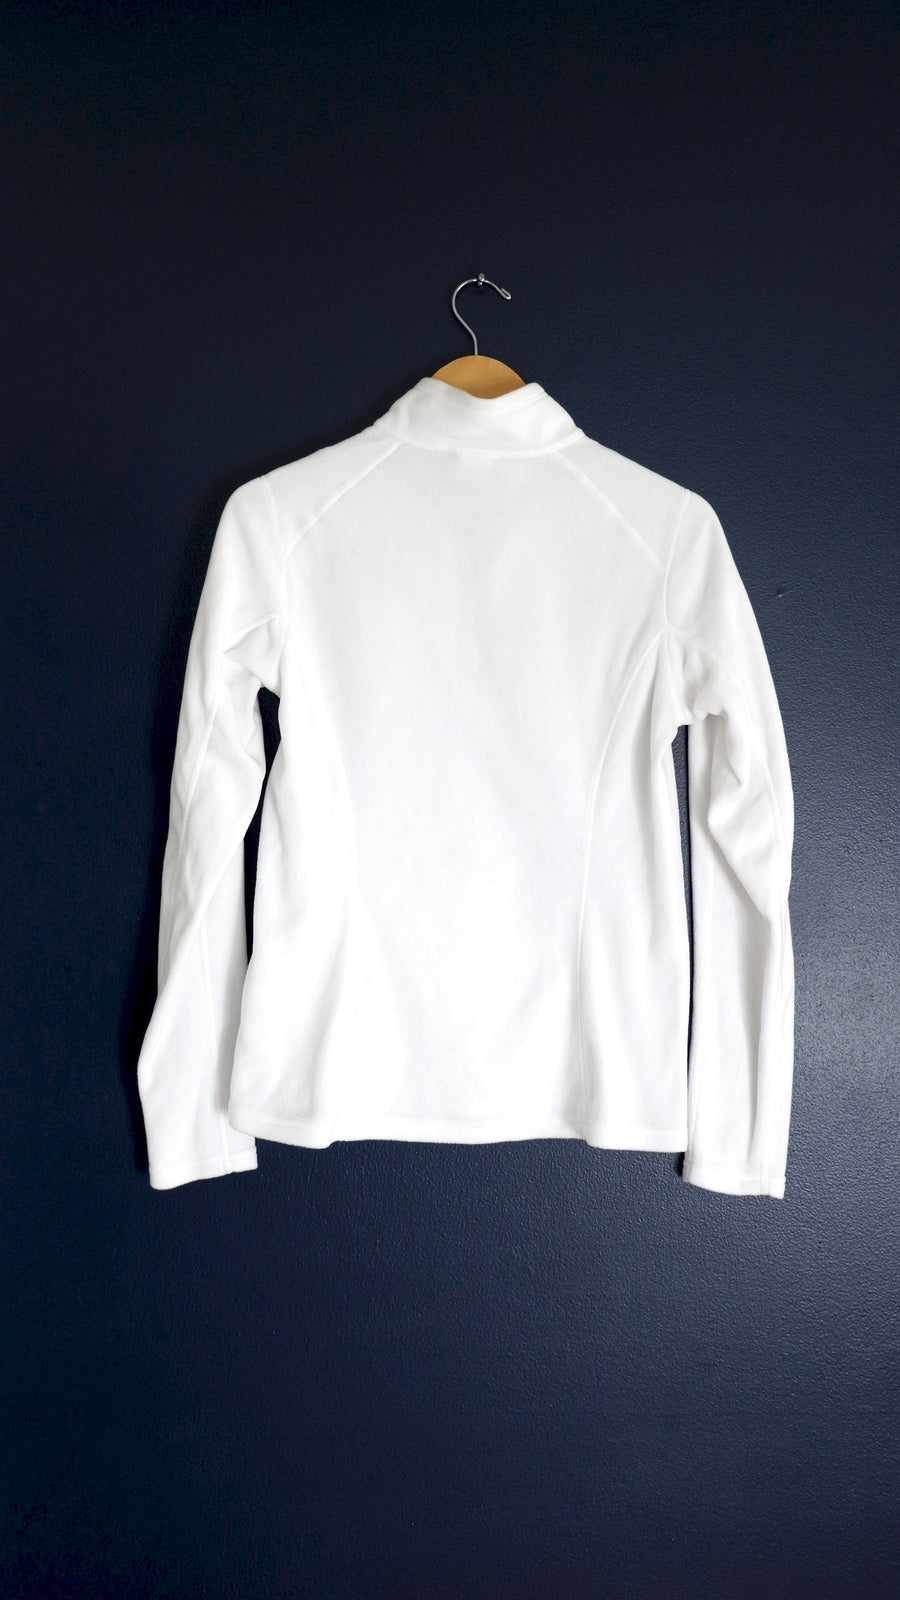 The North Face White Fleece Quarter Zip Jacket (S)